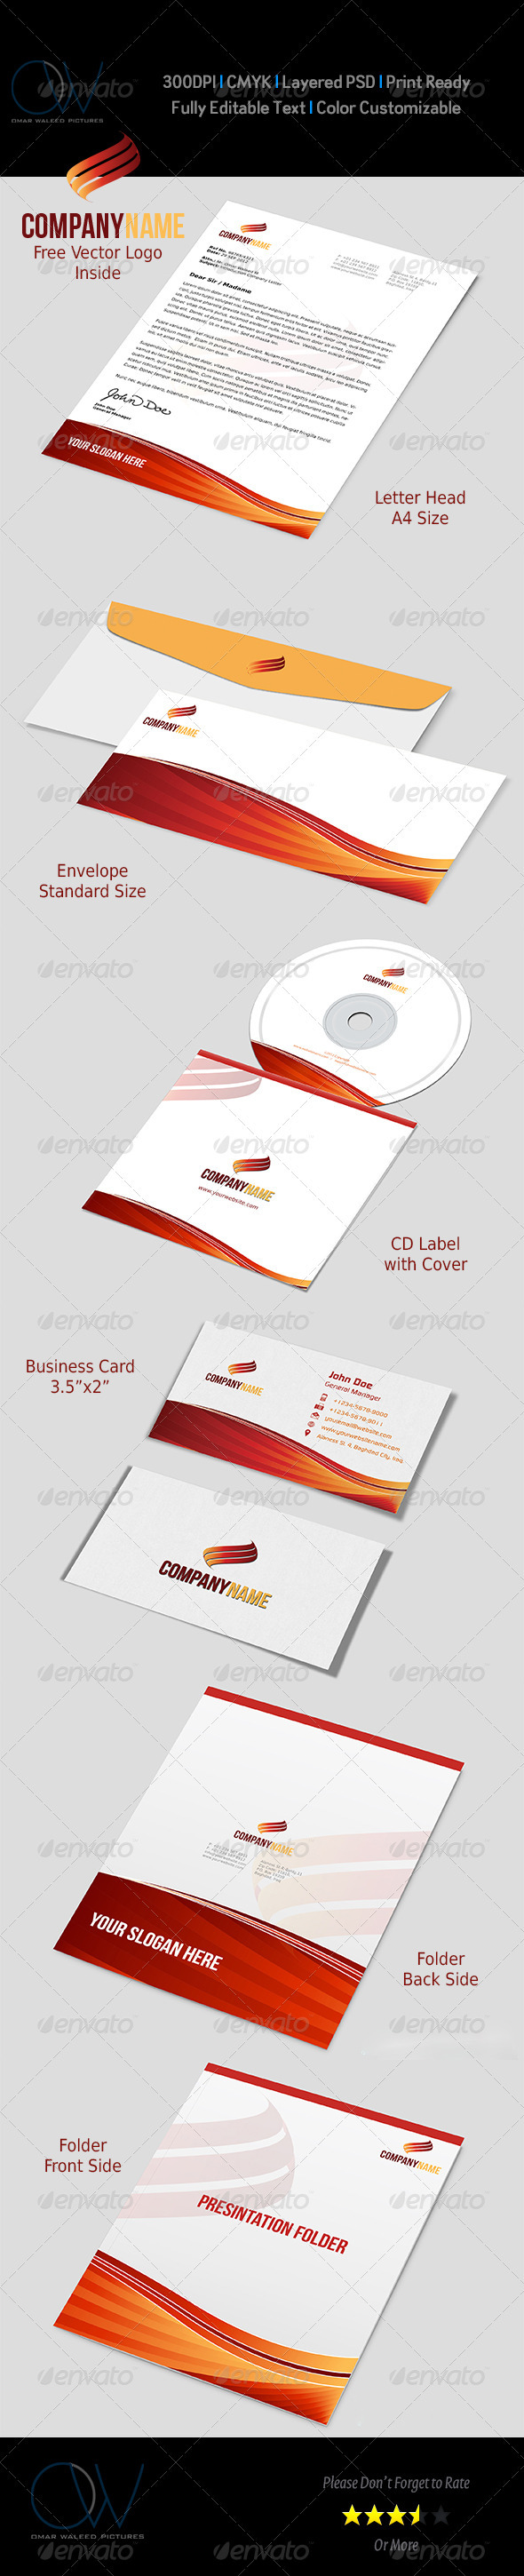 GraphicRiver Corporate Stationery Pack Vol.1 3271603